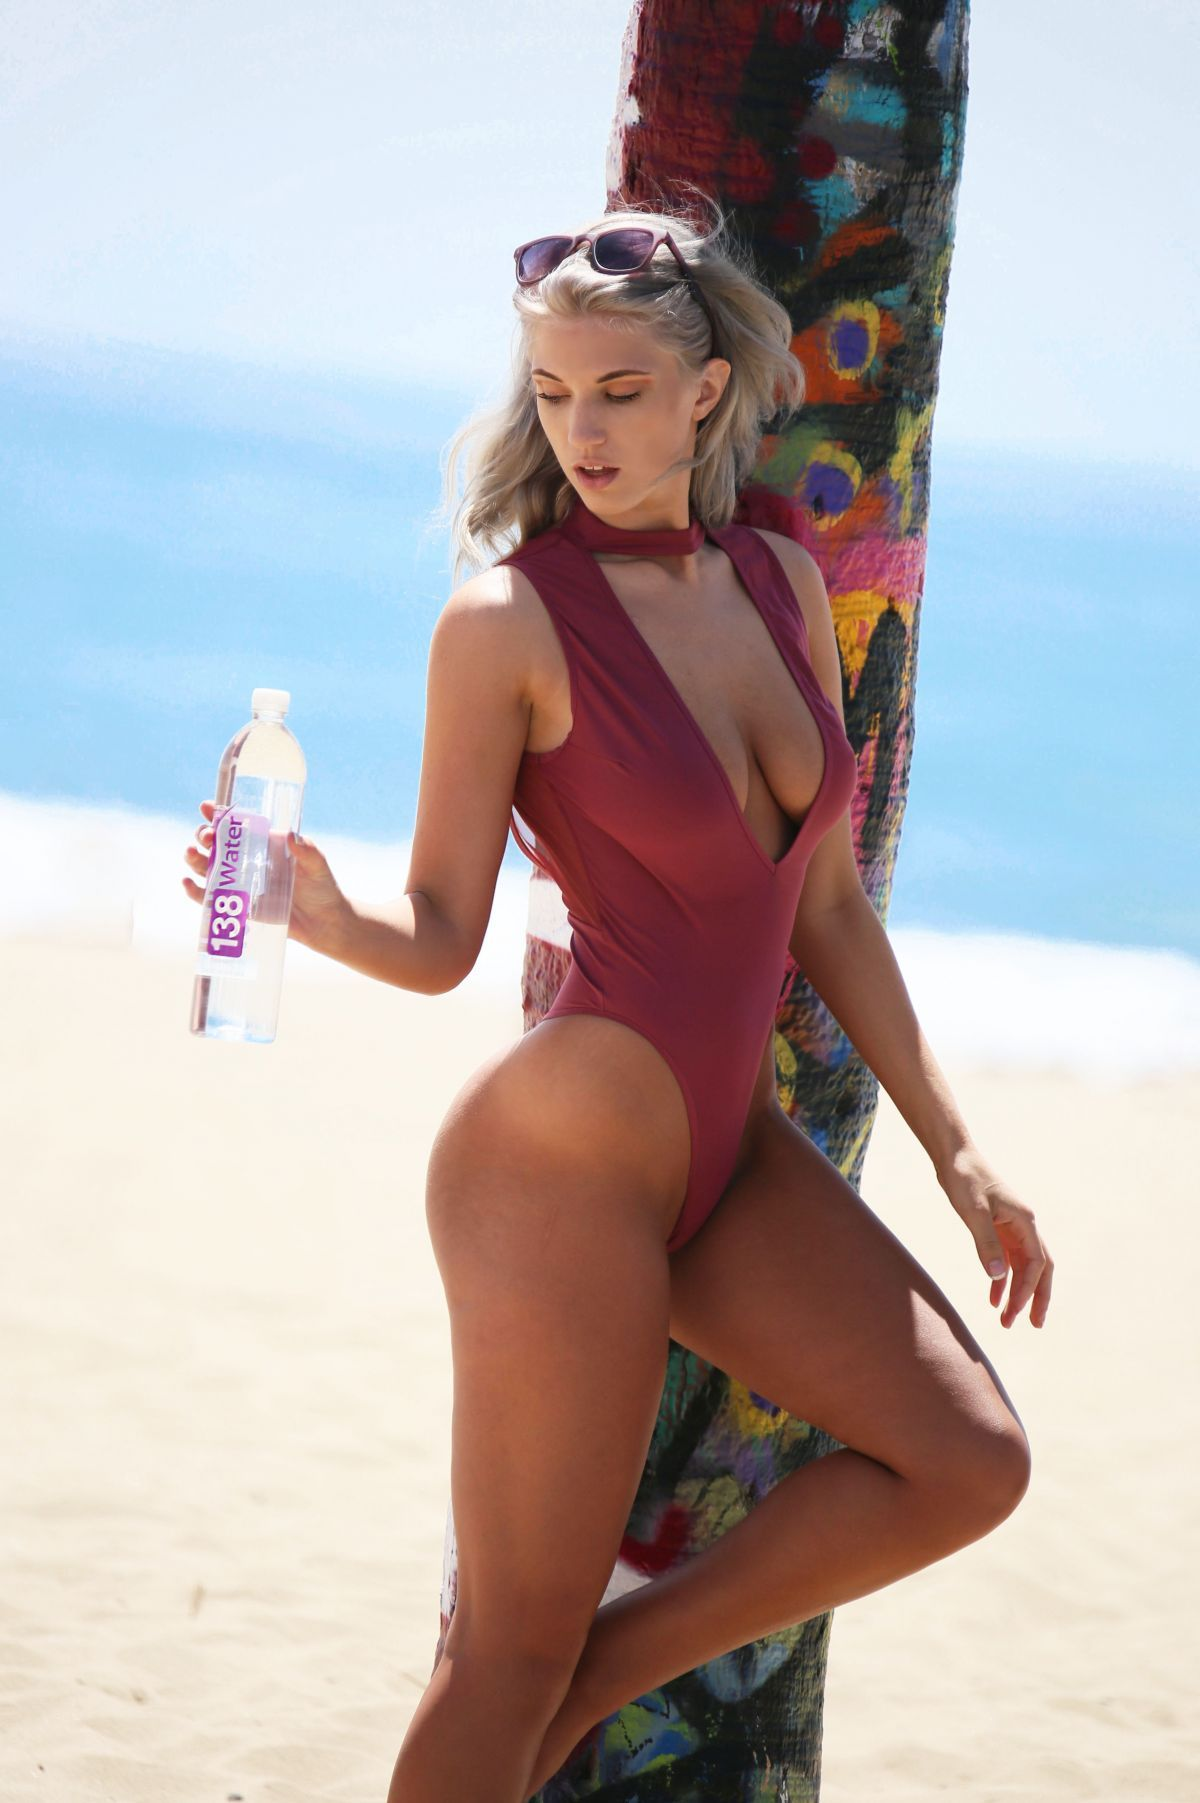 Samantha knezel swimsuit nude (36 pictures)